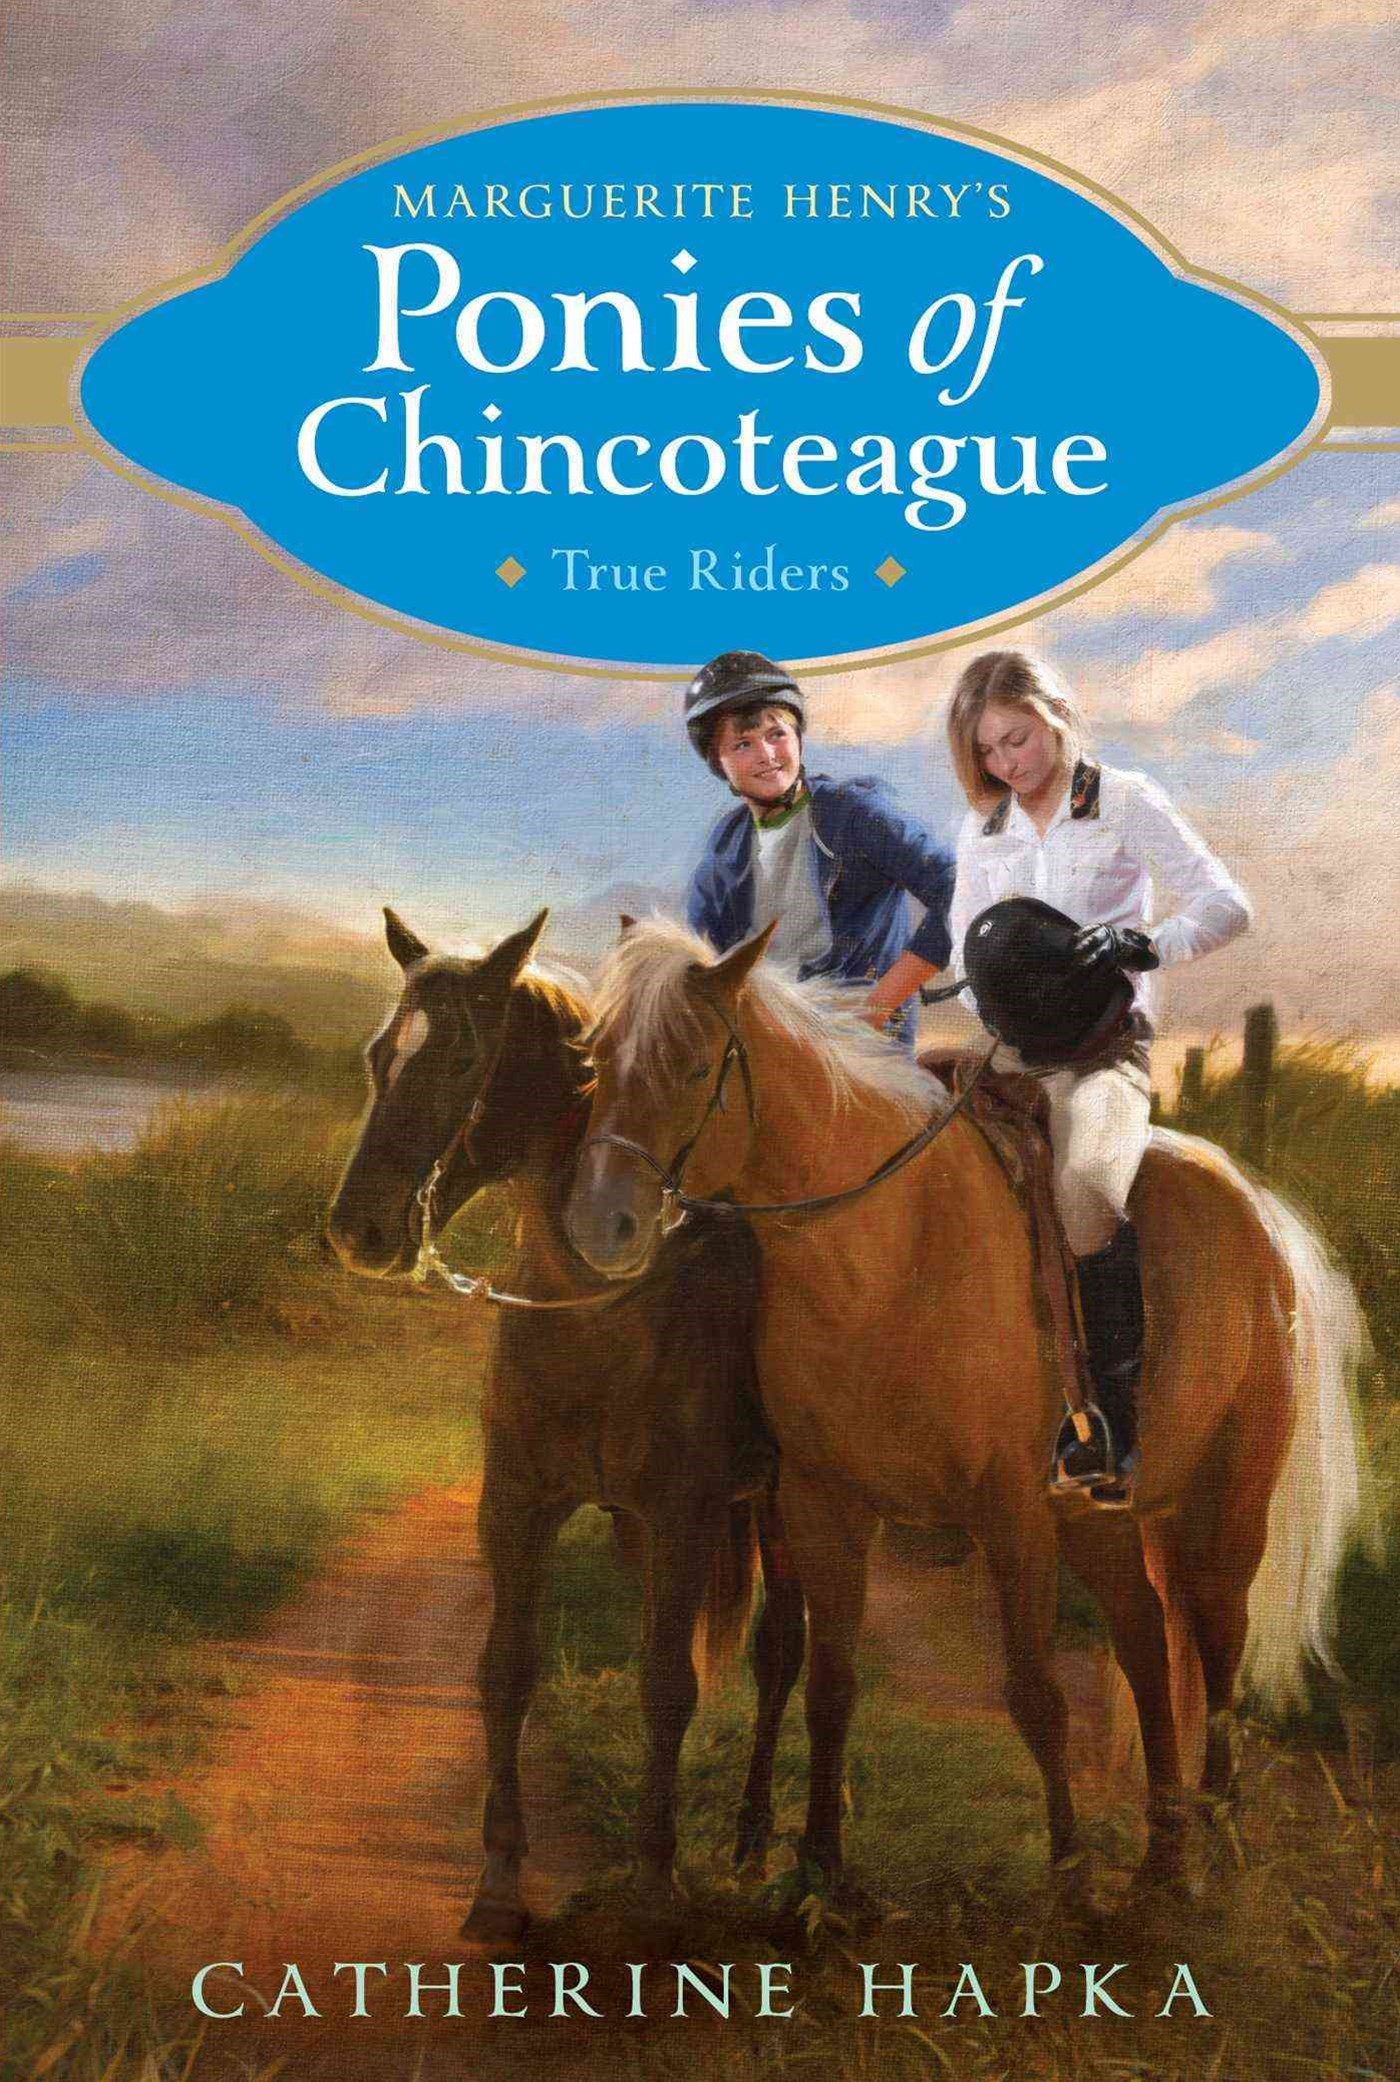 Marguerite Henry's Ponies of Chincoteague: True Riders